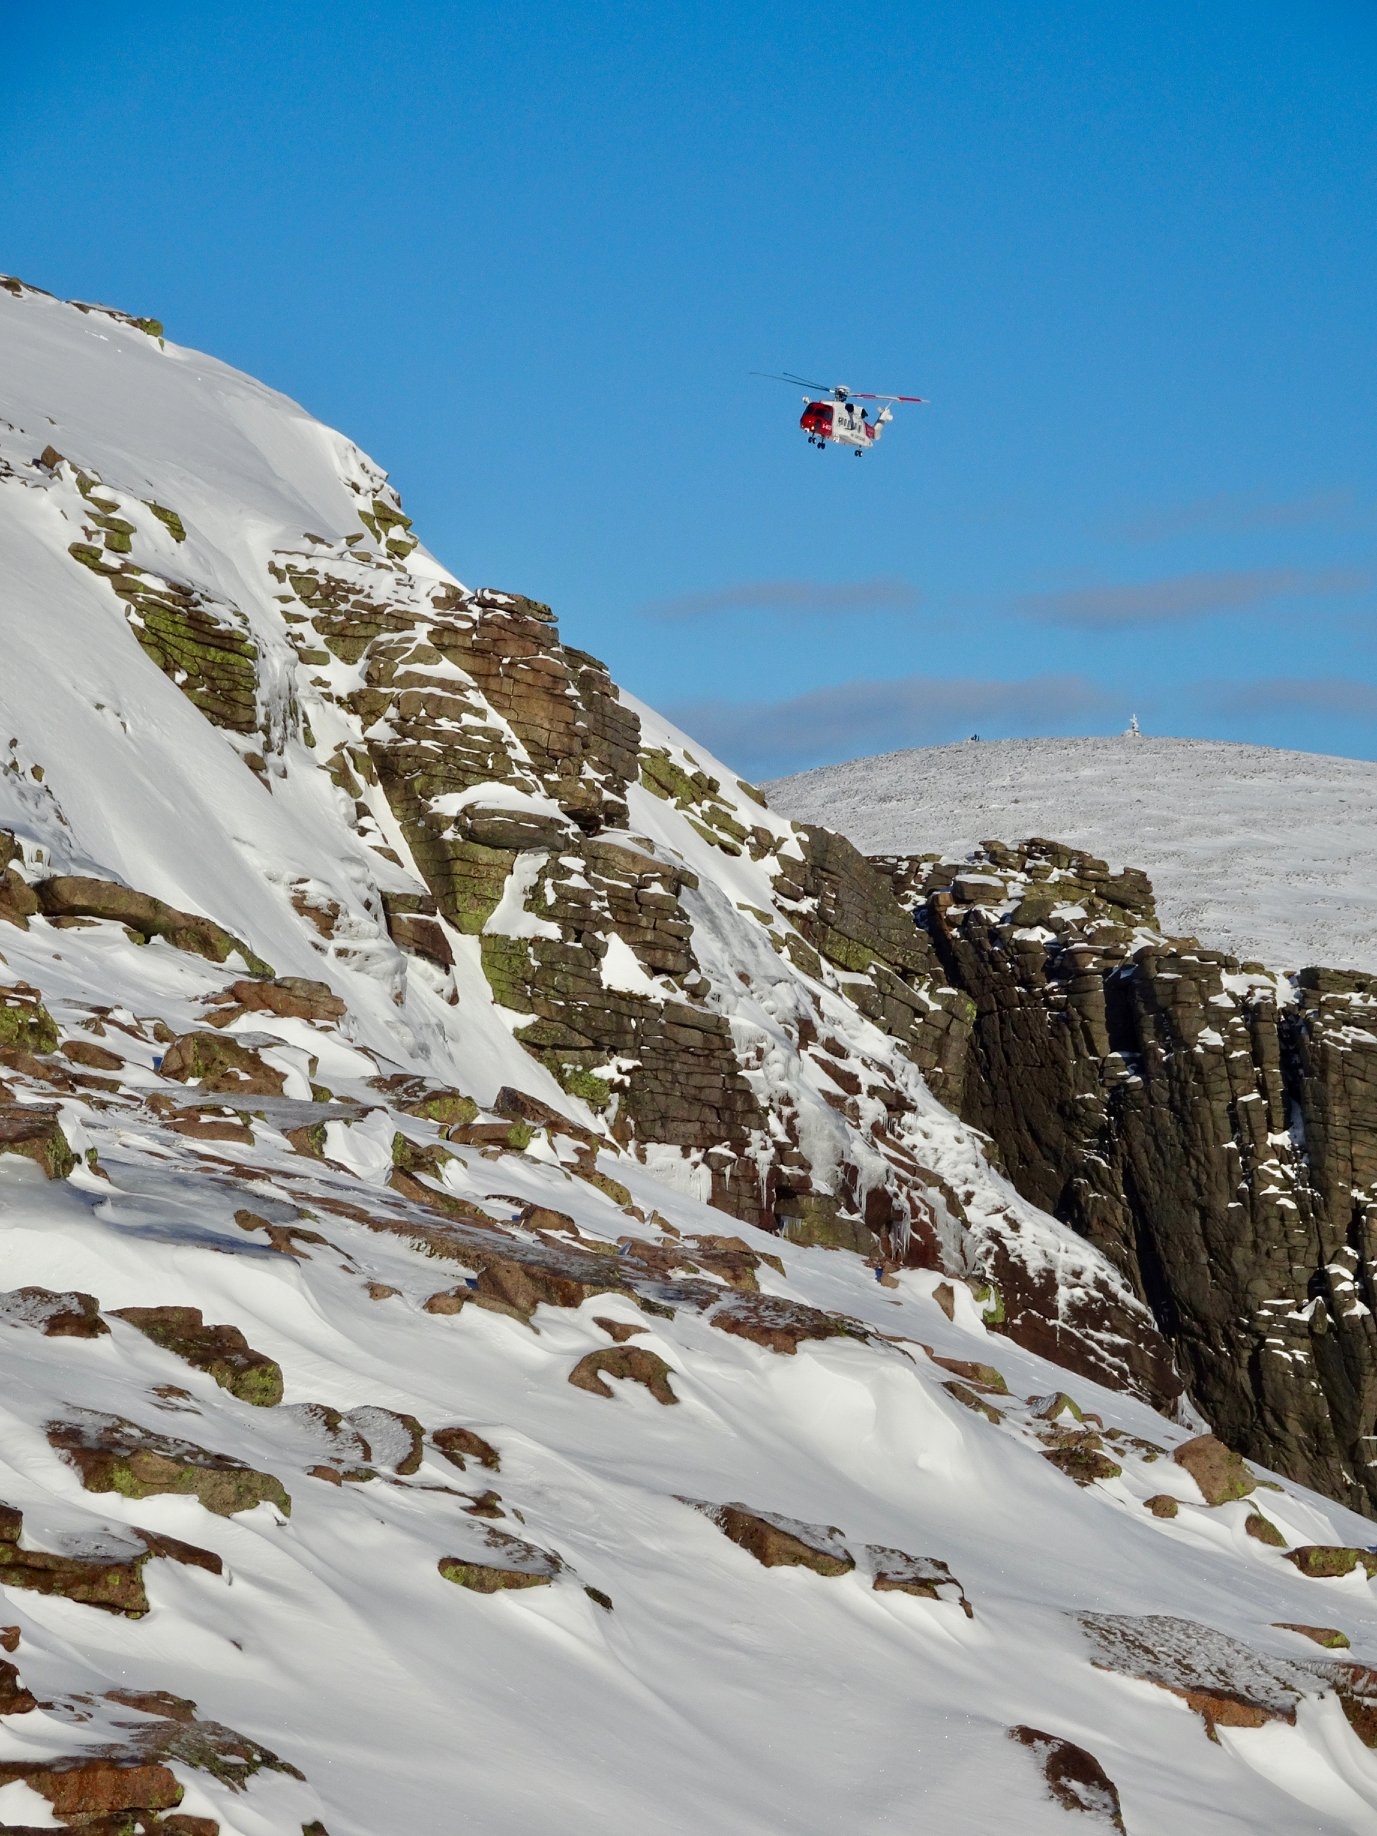 Cairngorm mountain rescue team winch someone to safety from a helicopter just about Loch Avon